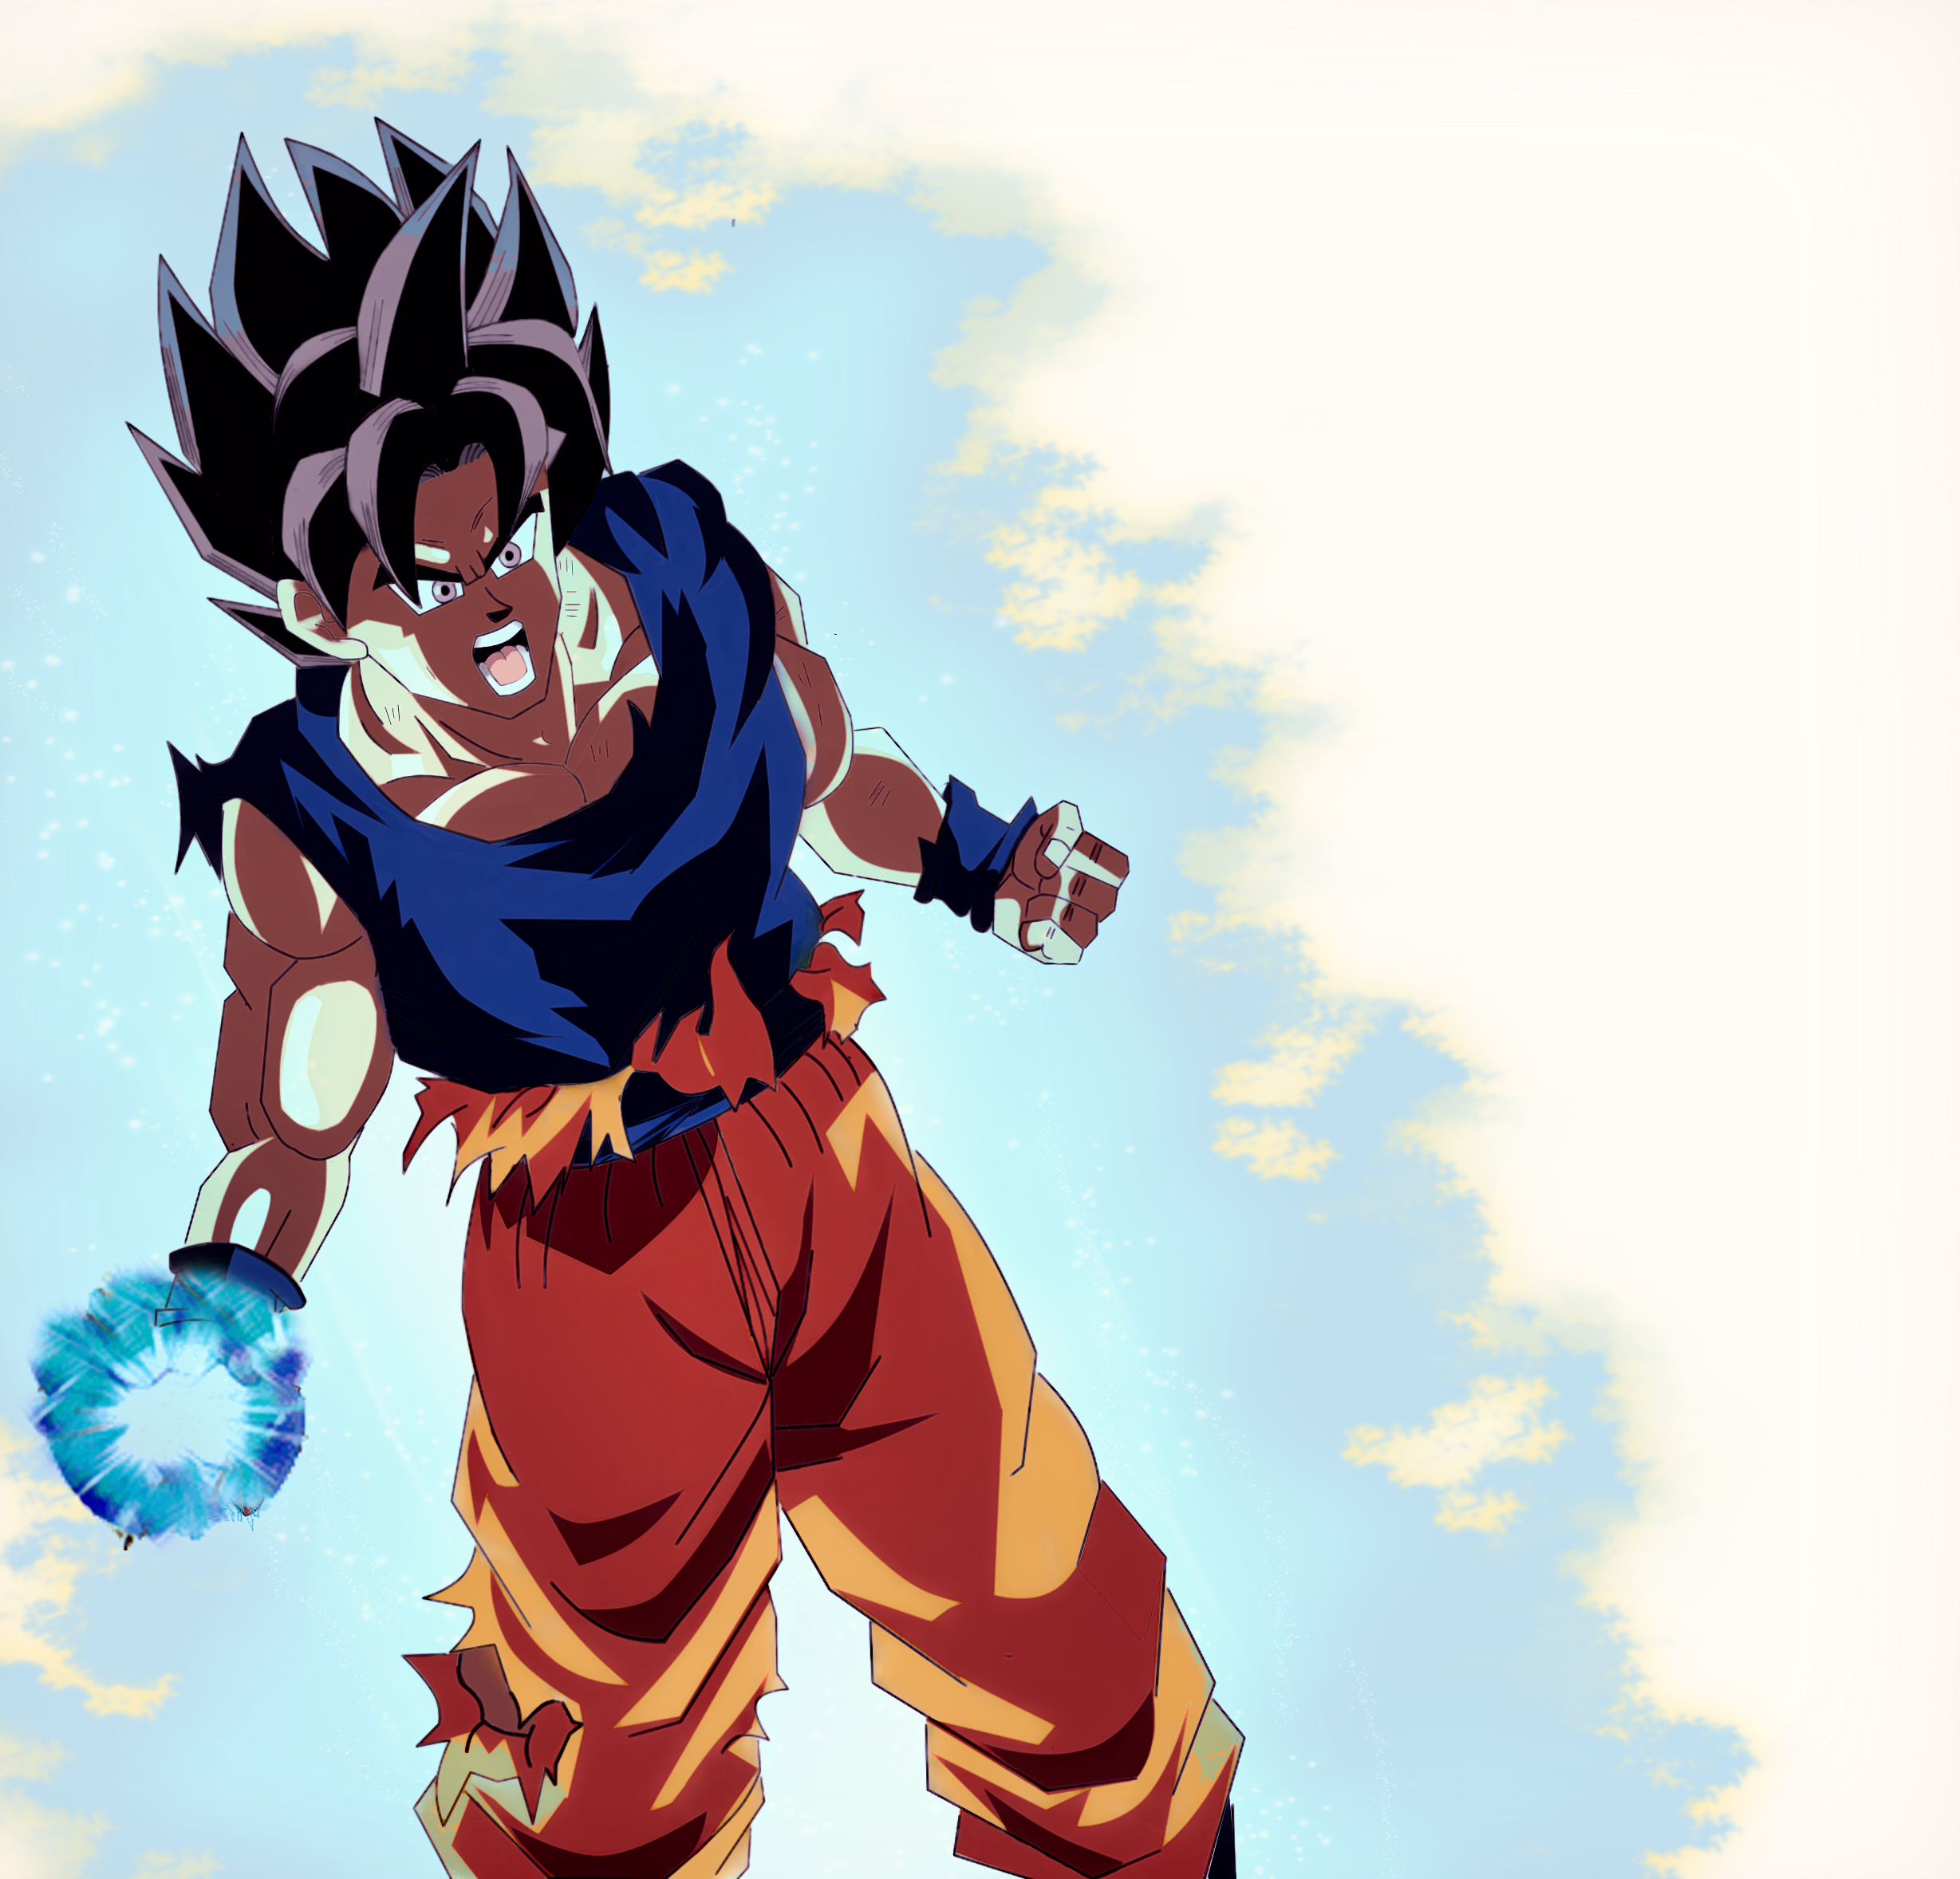 Ultra Instinct Dragon Ball Super Wallpaper: Dragon Ball Super By Josephgednosss